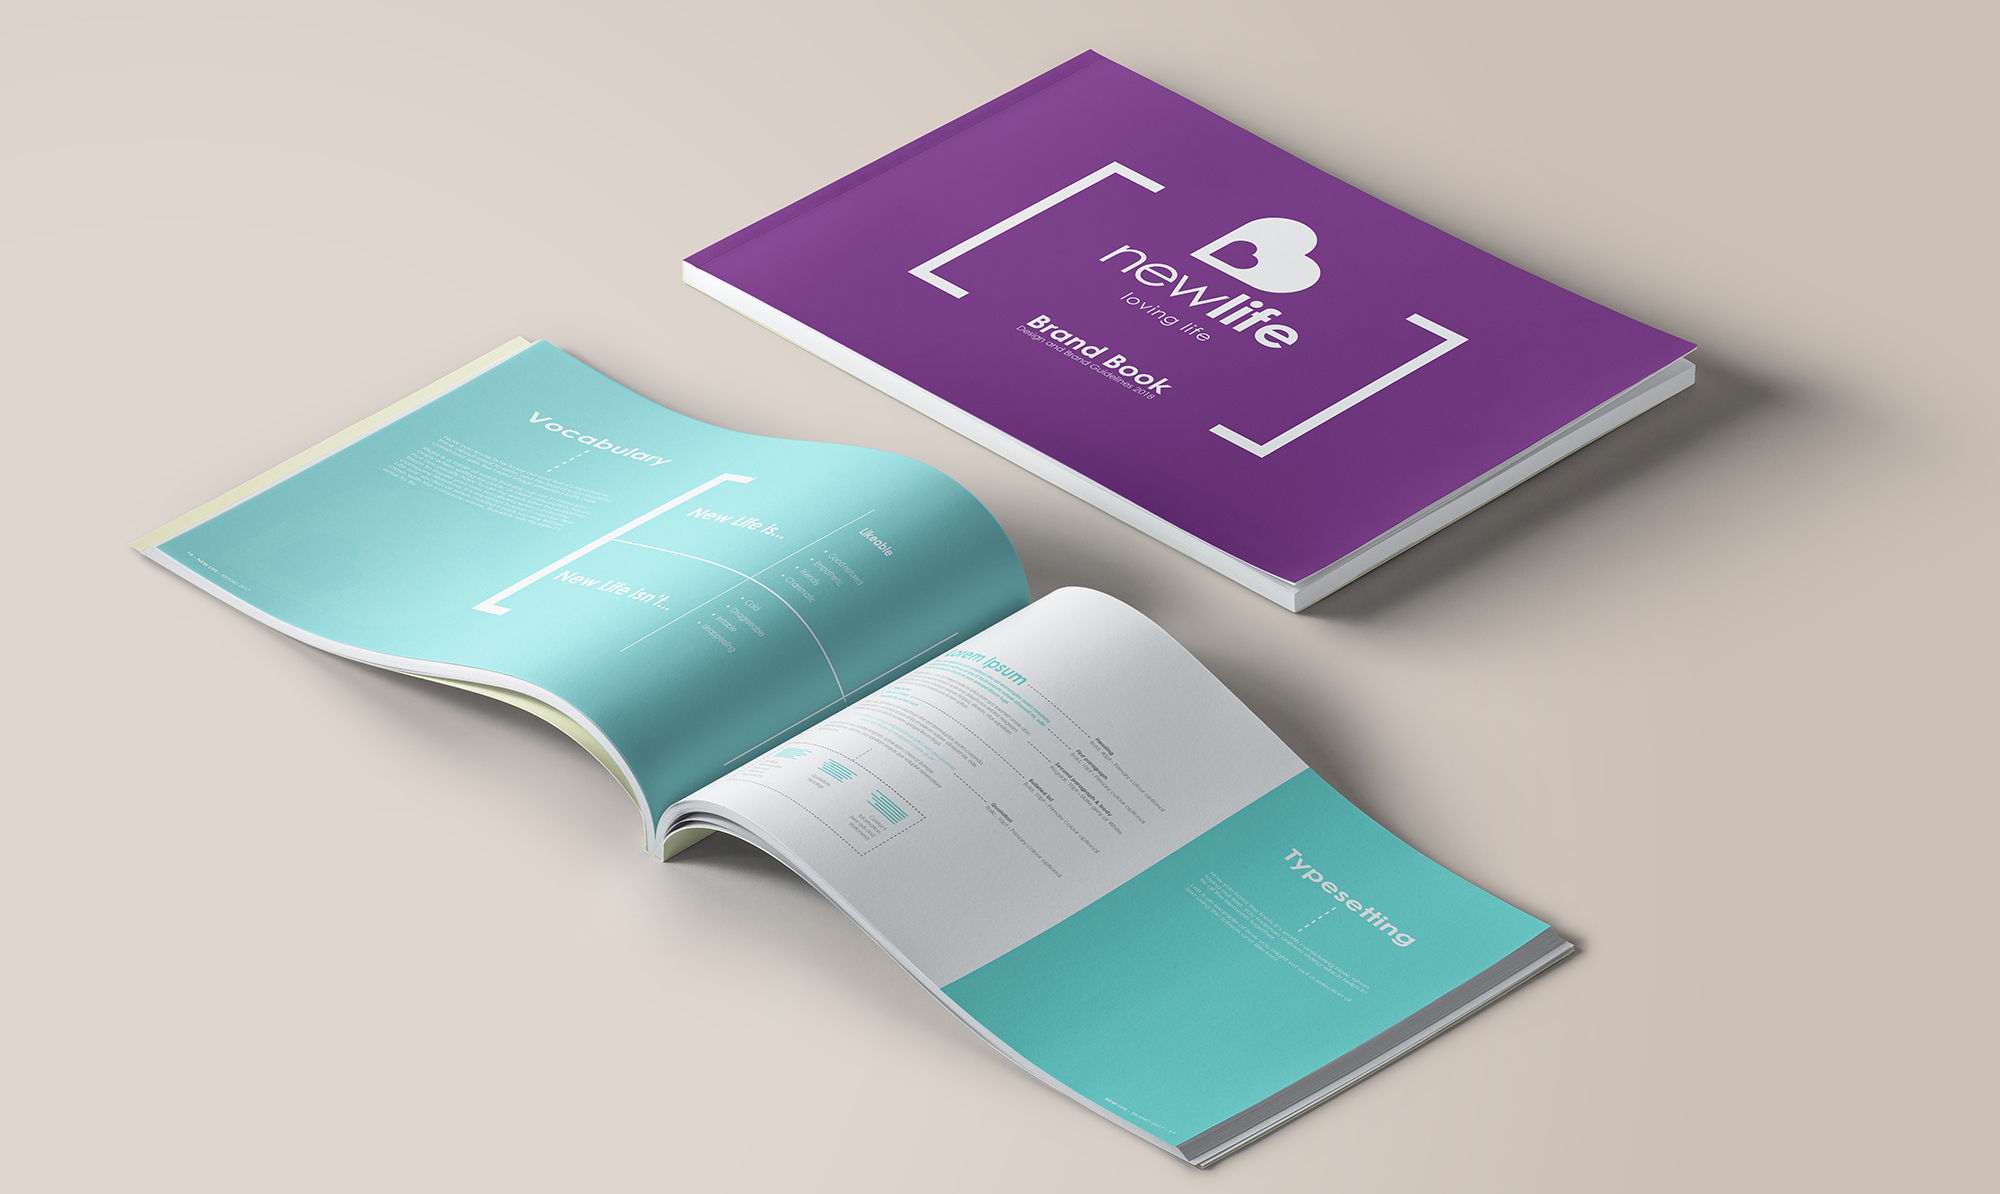 Newlife brand book mock 1 1 - 3 Steps to a Stunning and Professional Brochure